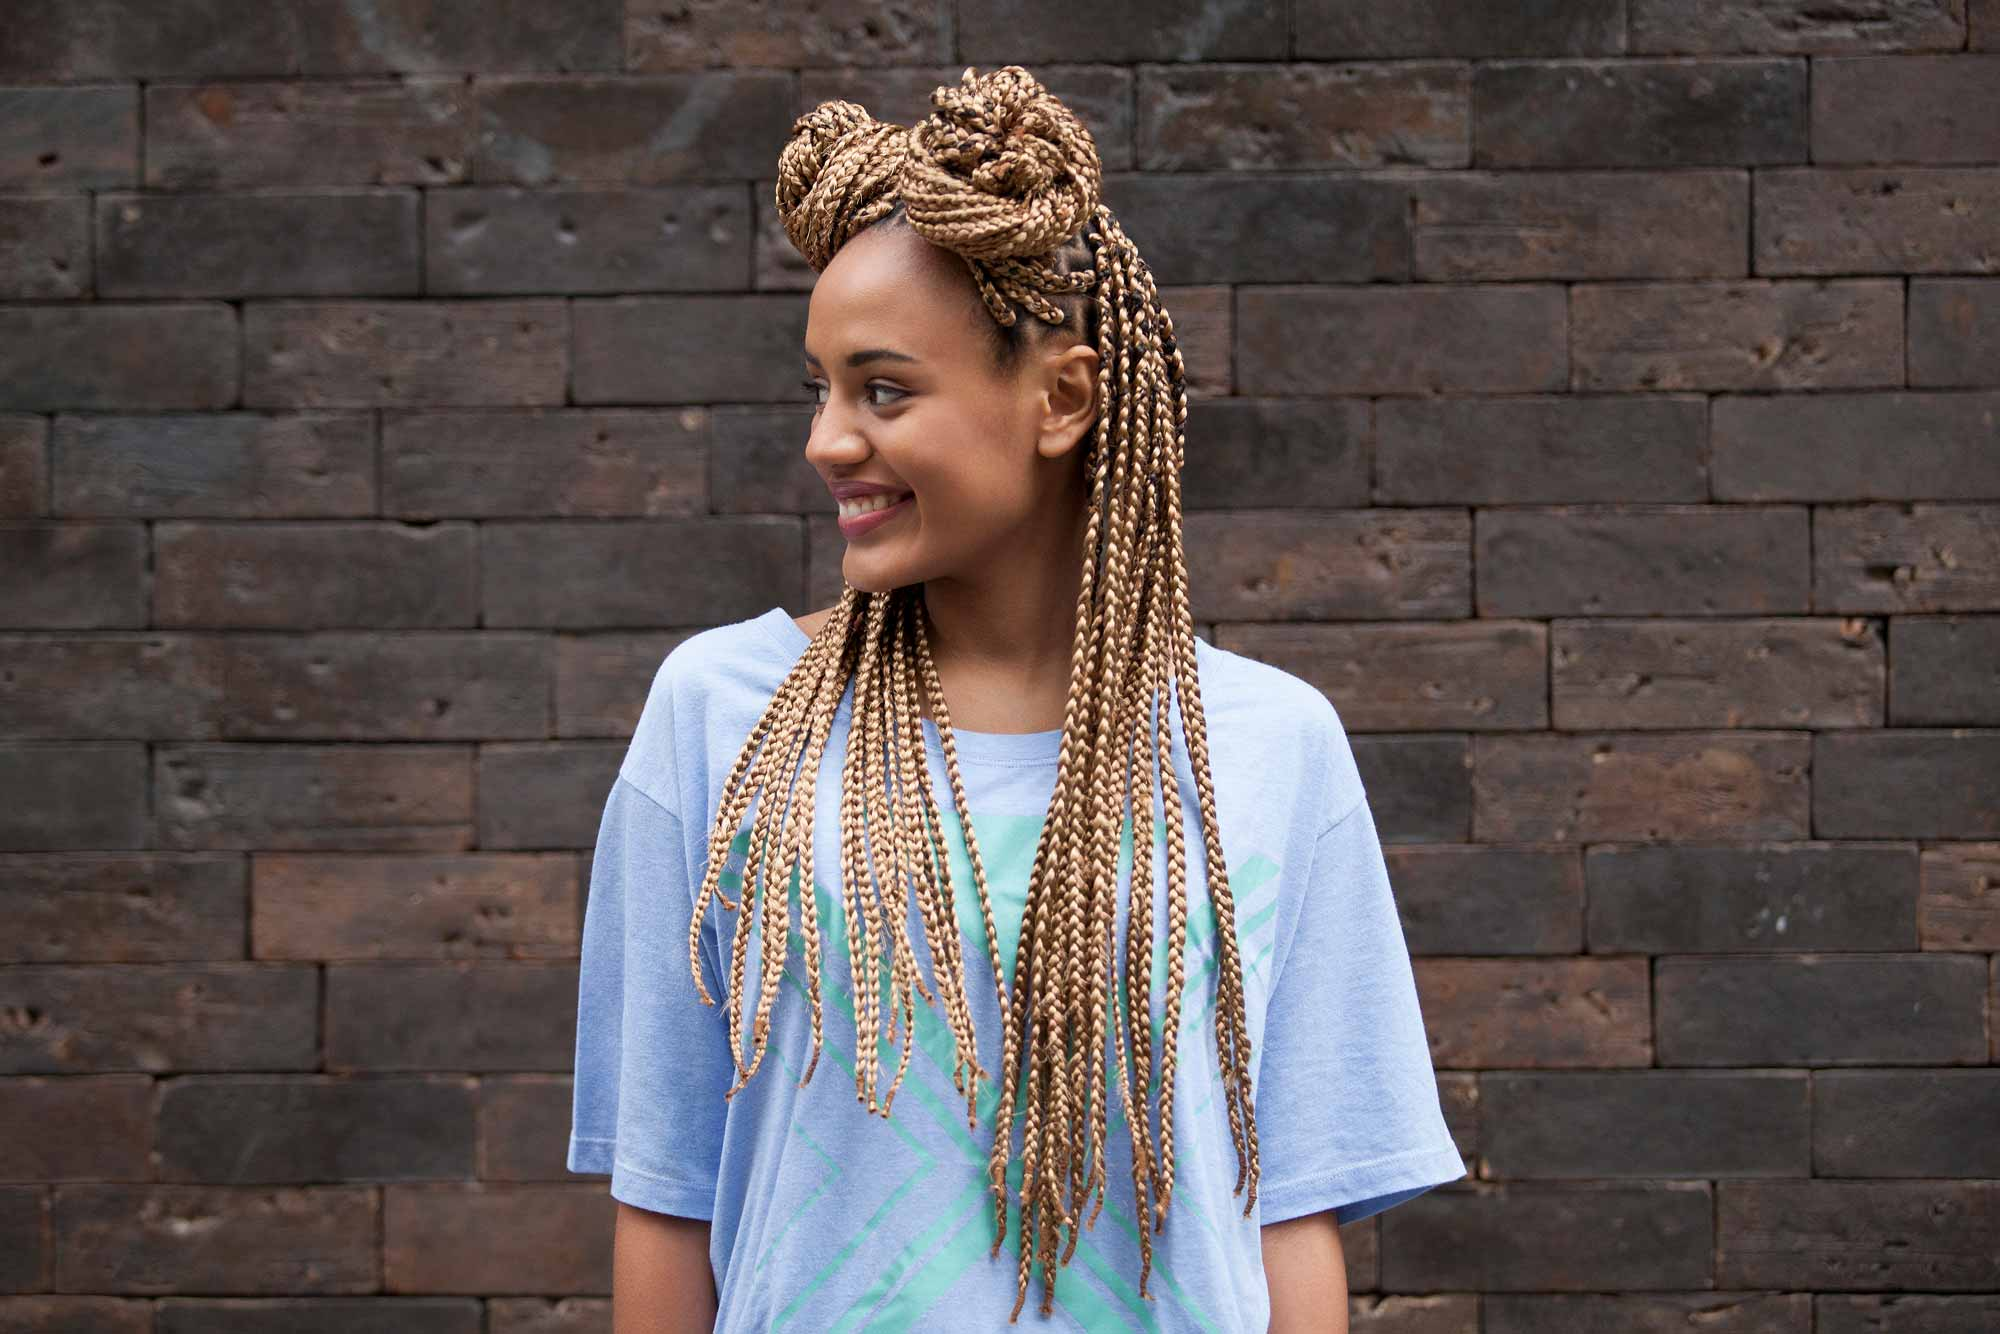 How to wear honey colored braids